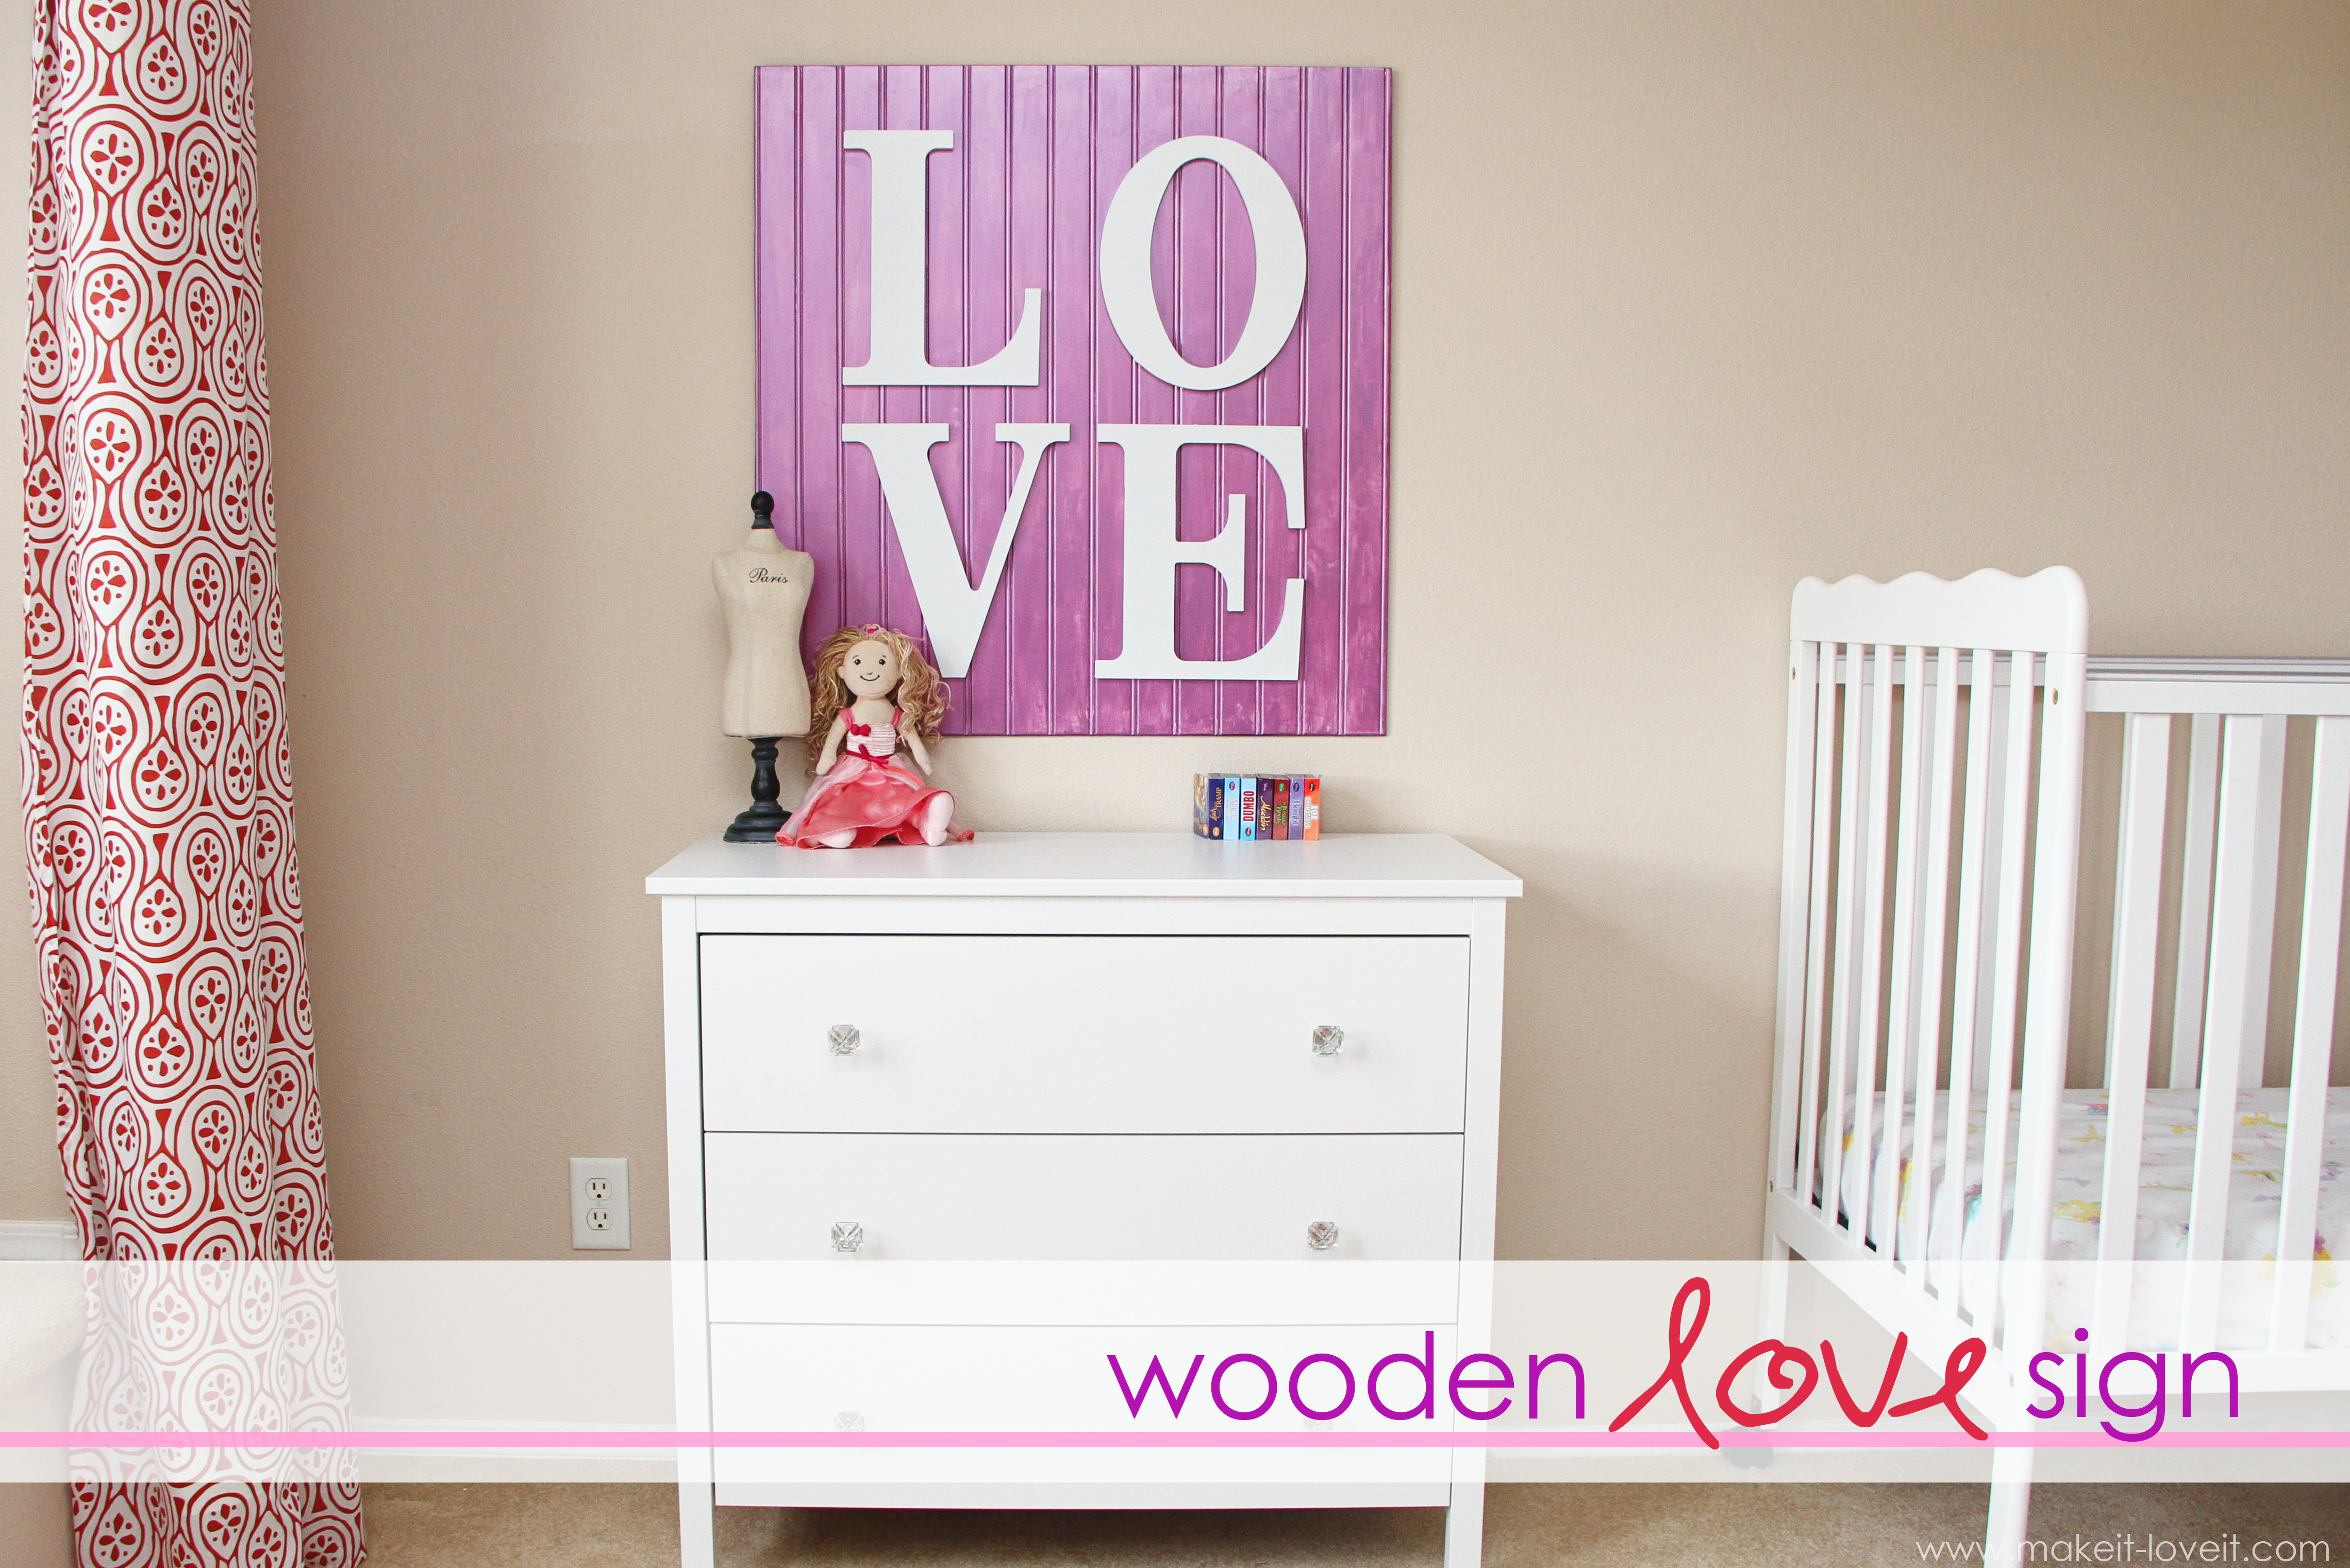 Wall Decor: wooden LOVE sign | Make It and Love It